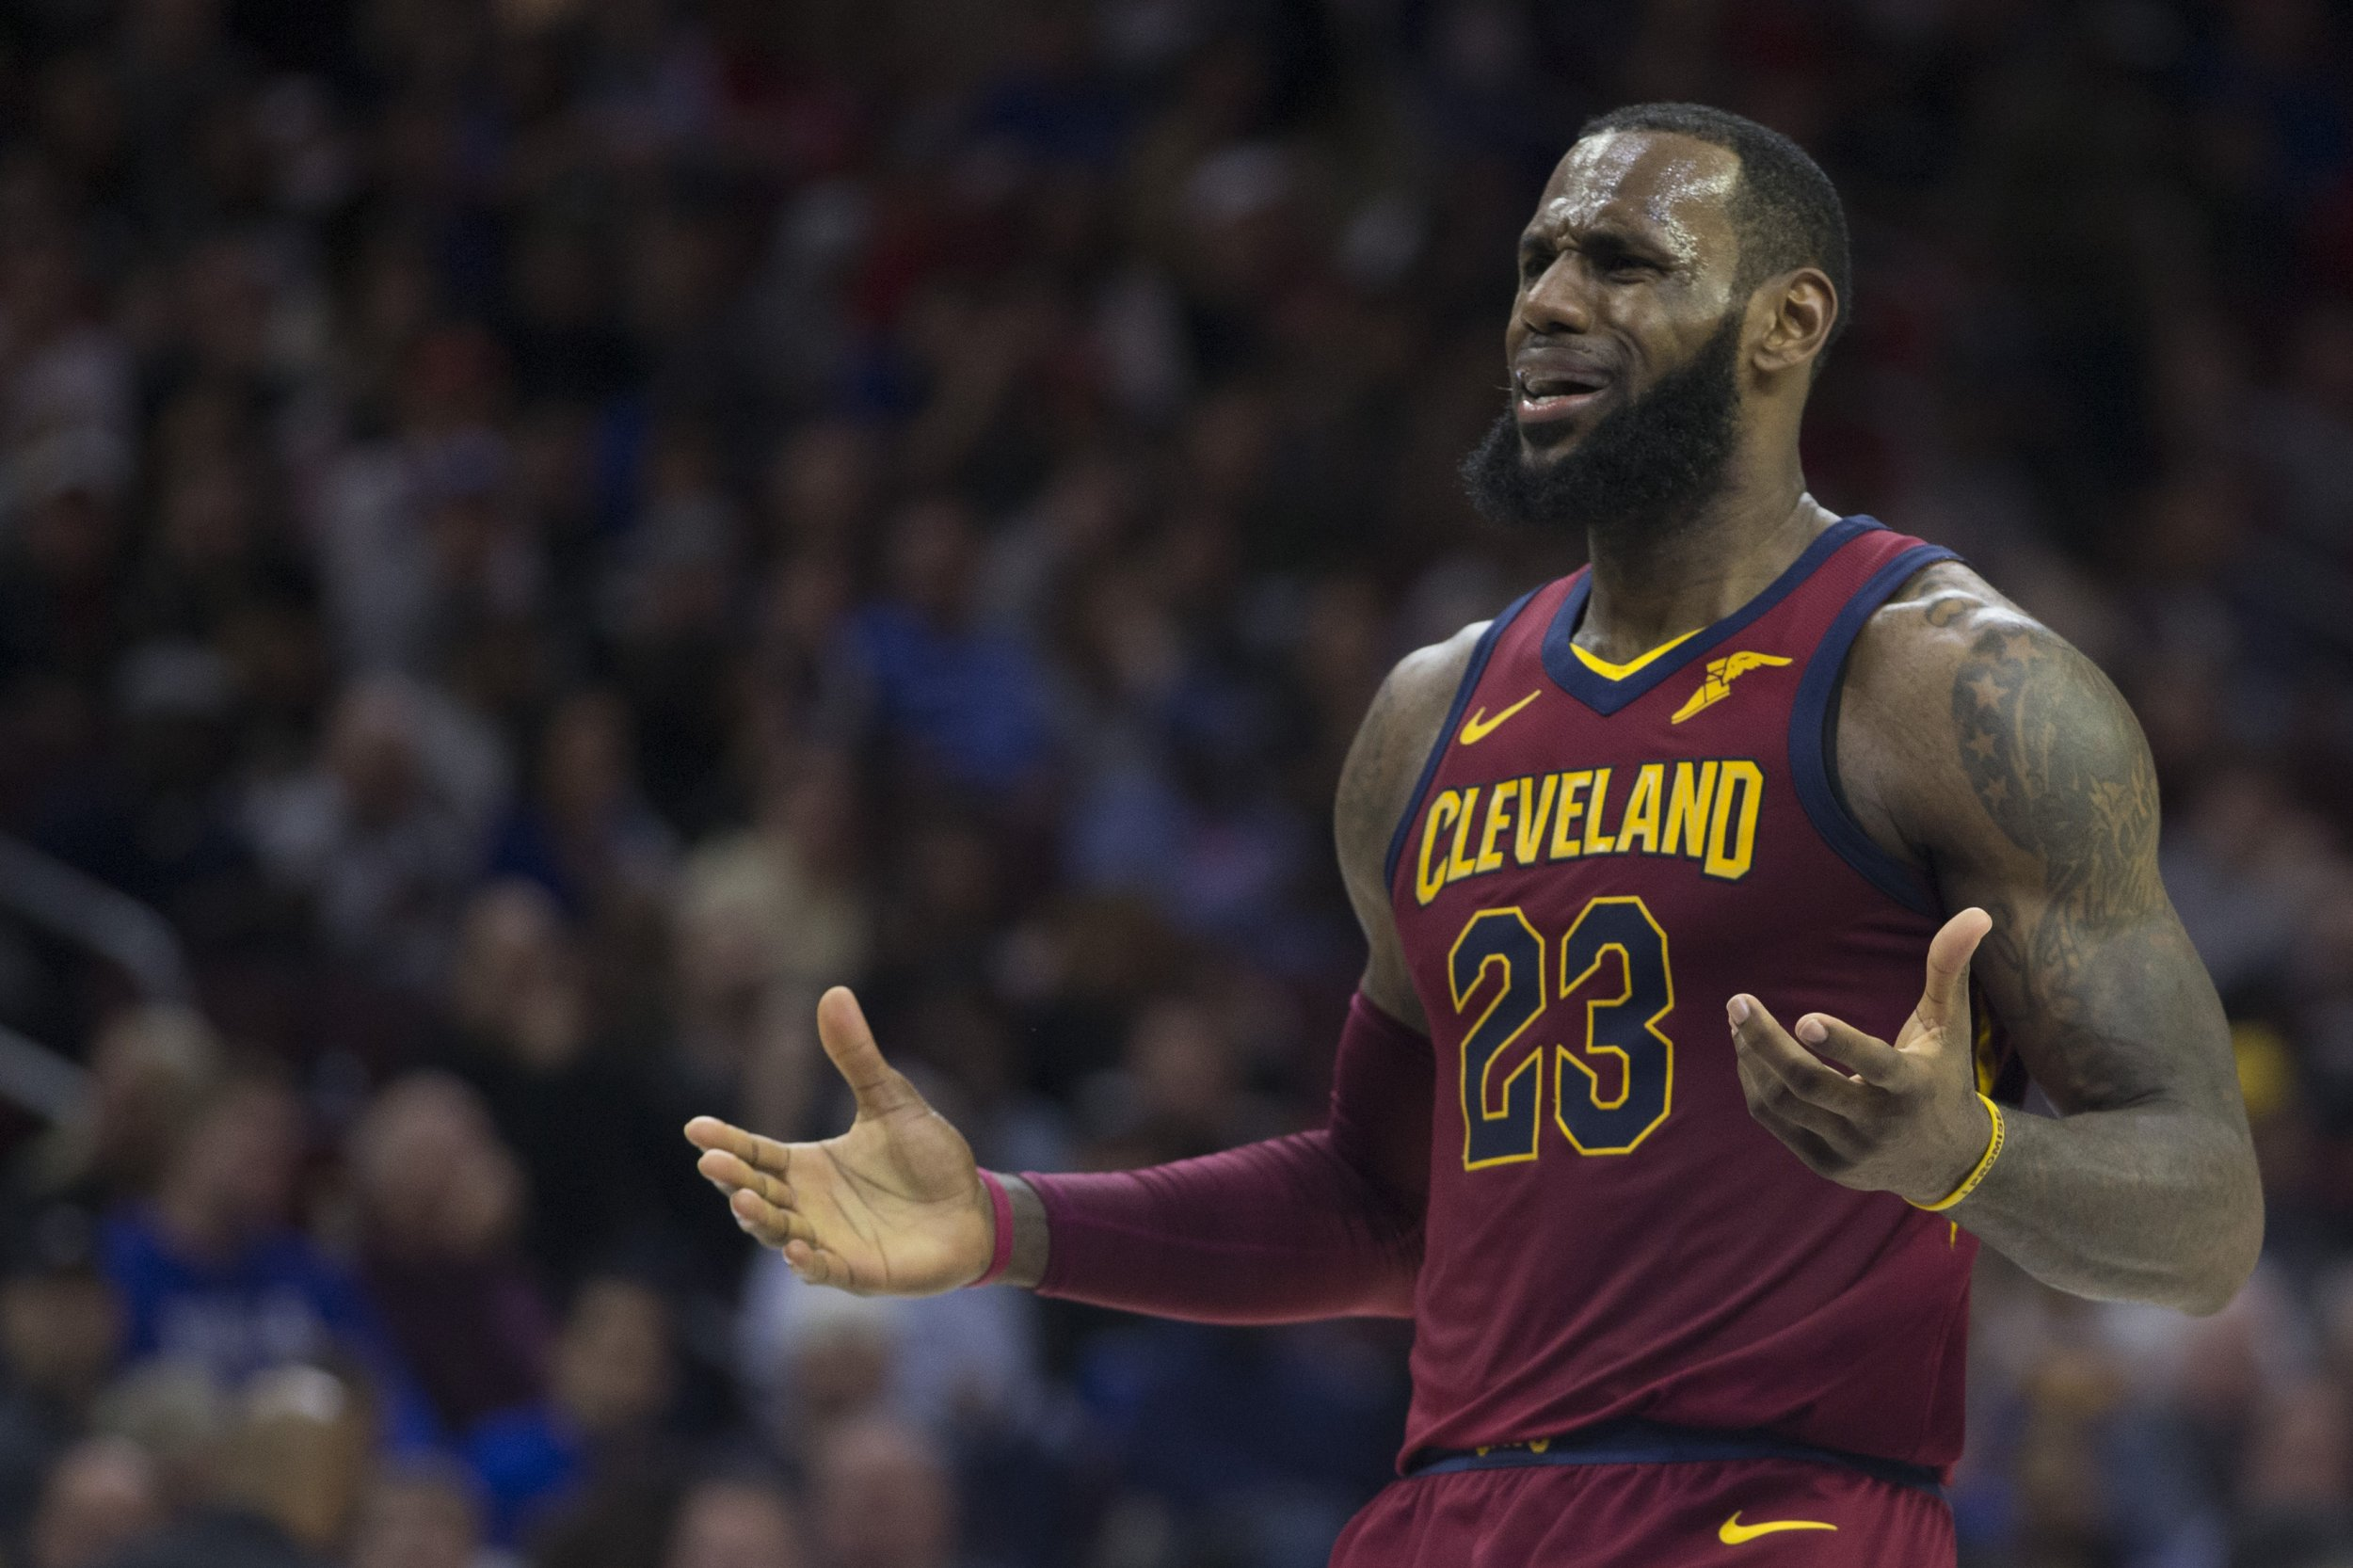 d76f1d6cbb1 GettyImages-942816680 LeBron James in action against the Philadelphia ...